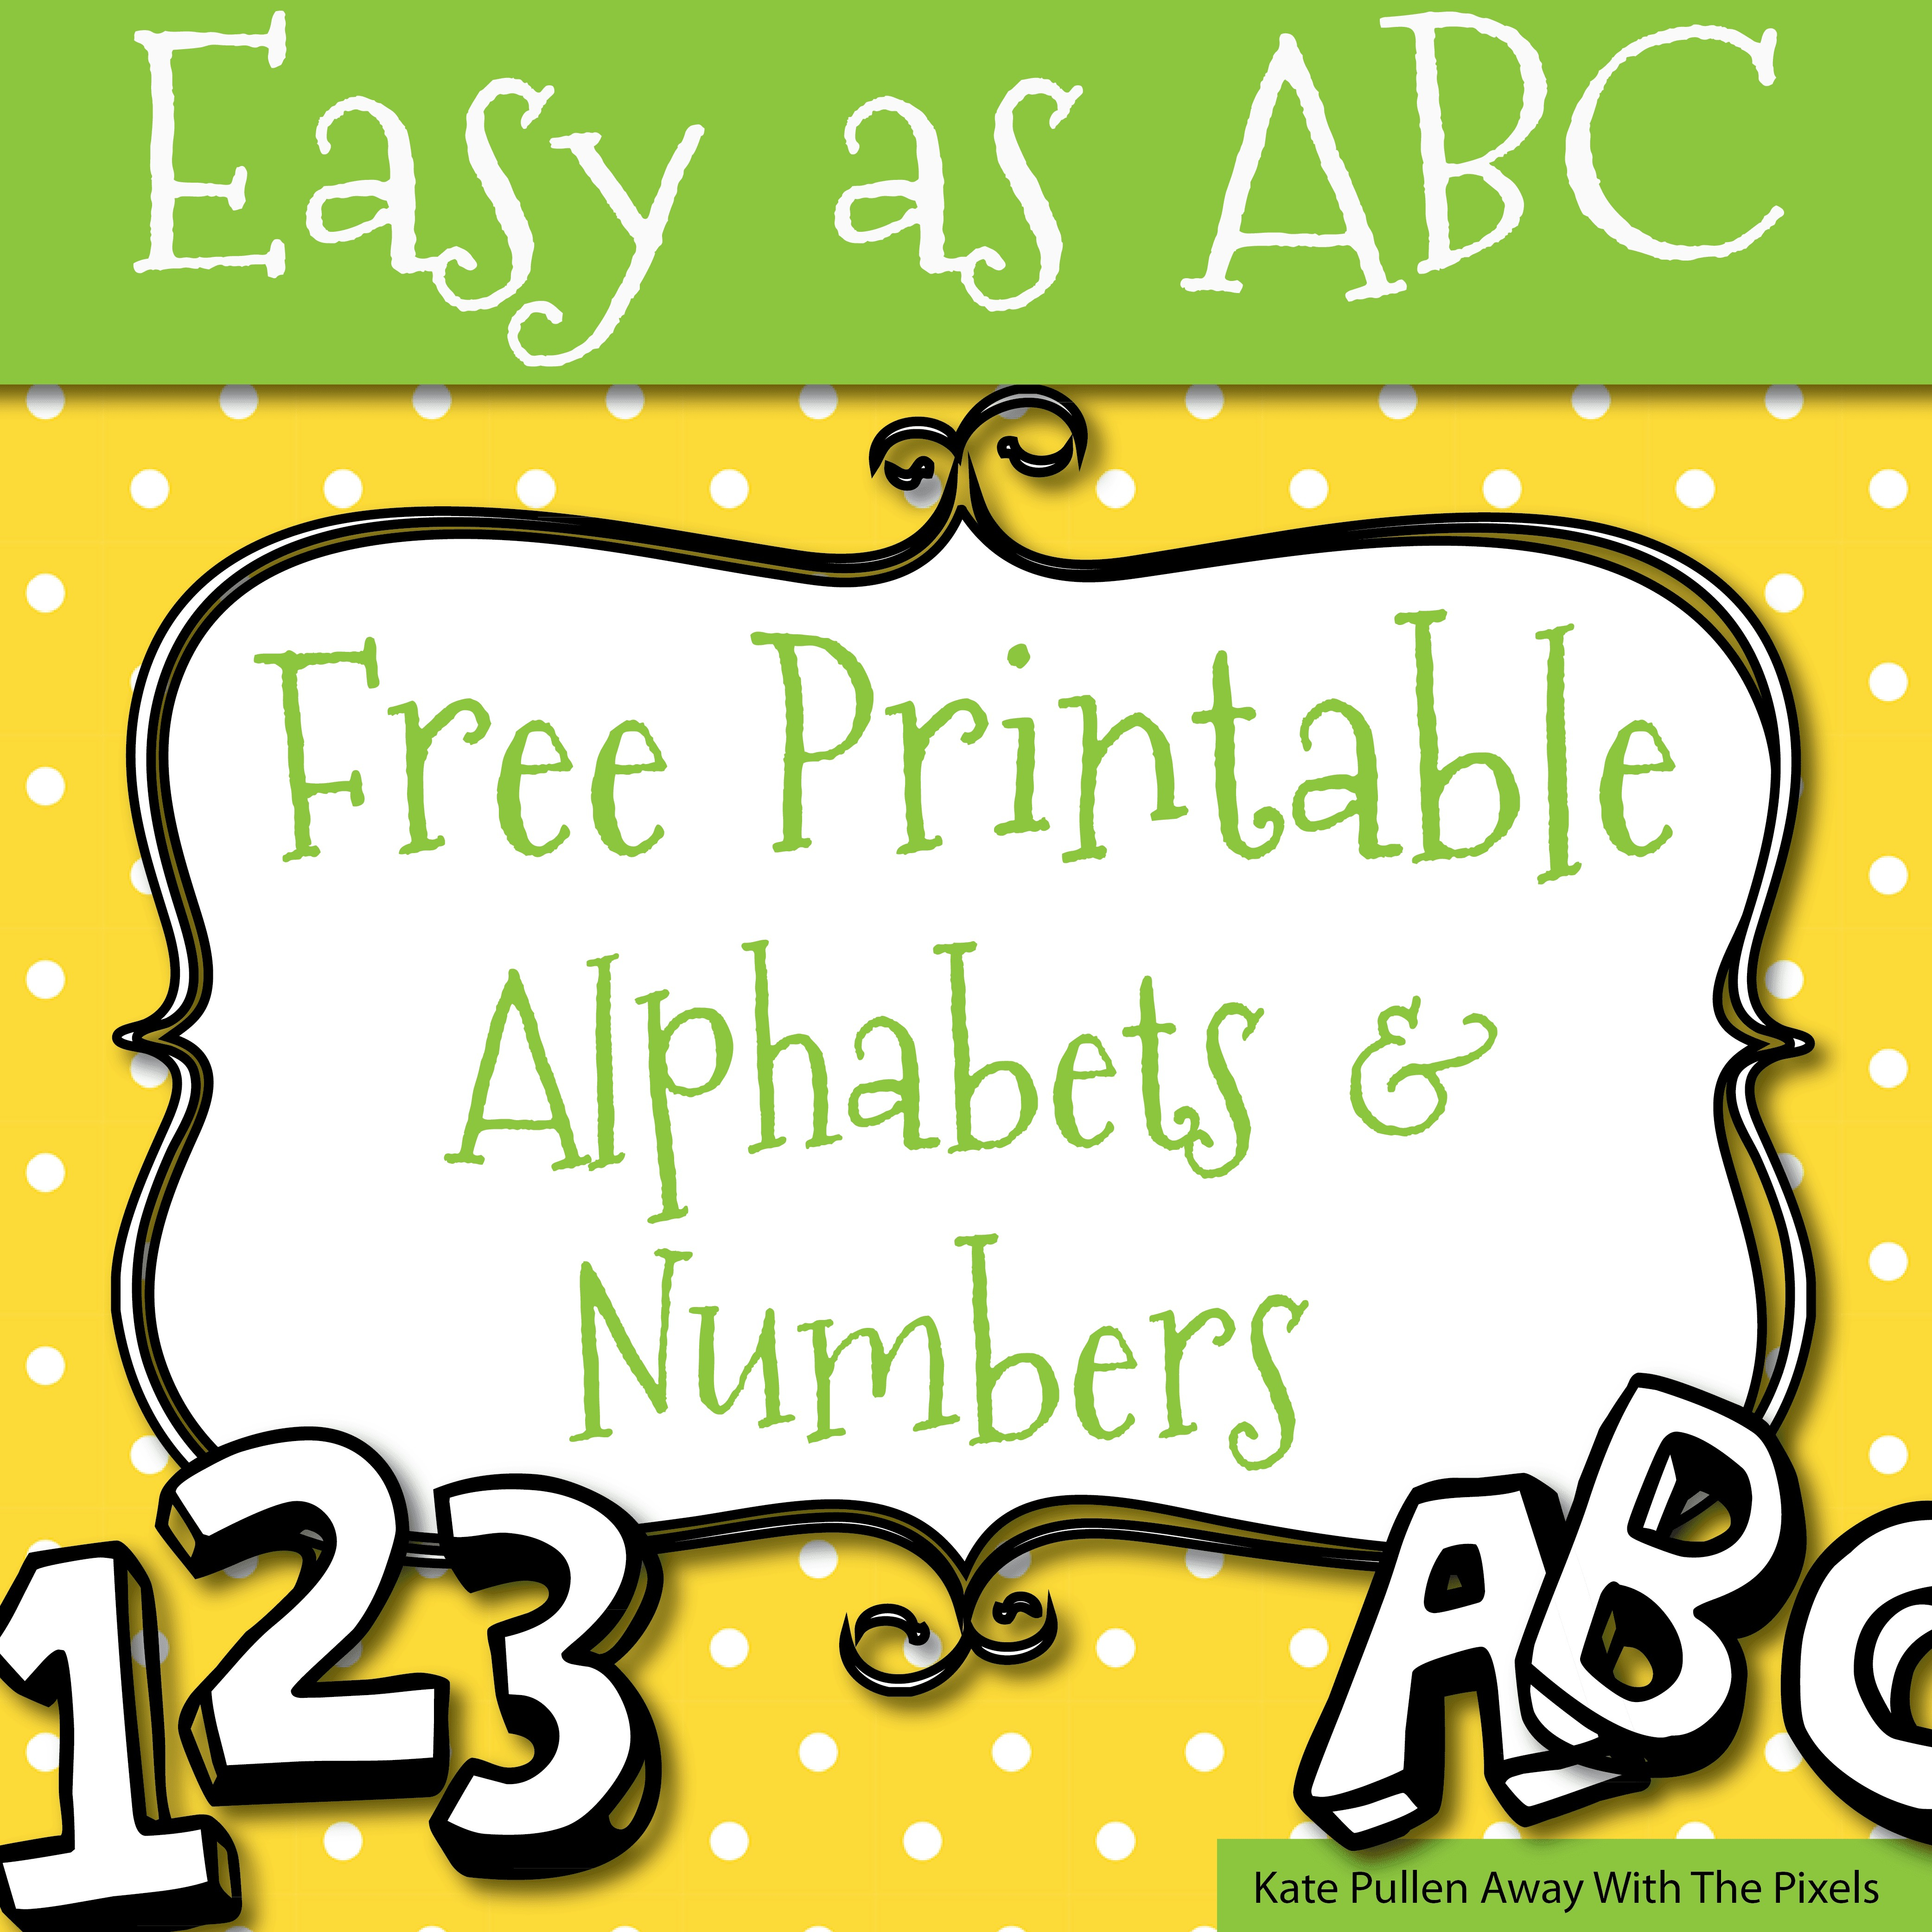 Printable Letter Stencils A4 New Free Printable Letters And Numbers - Free Printable Letters And Numbers